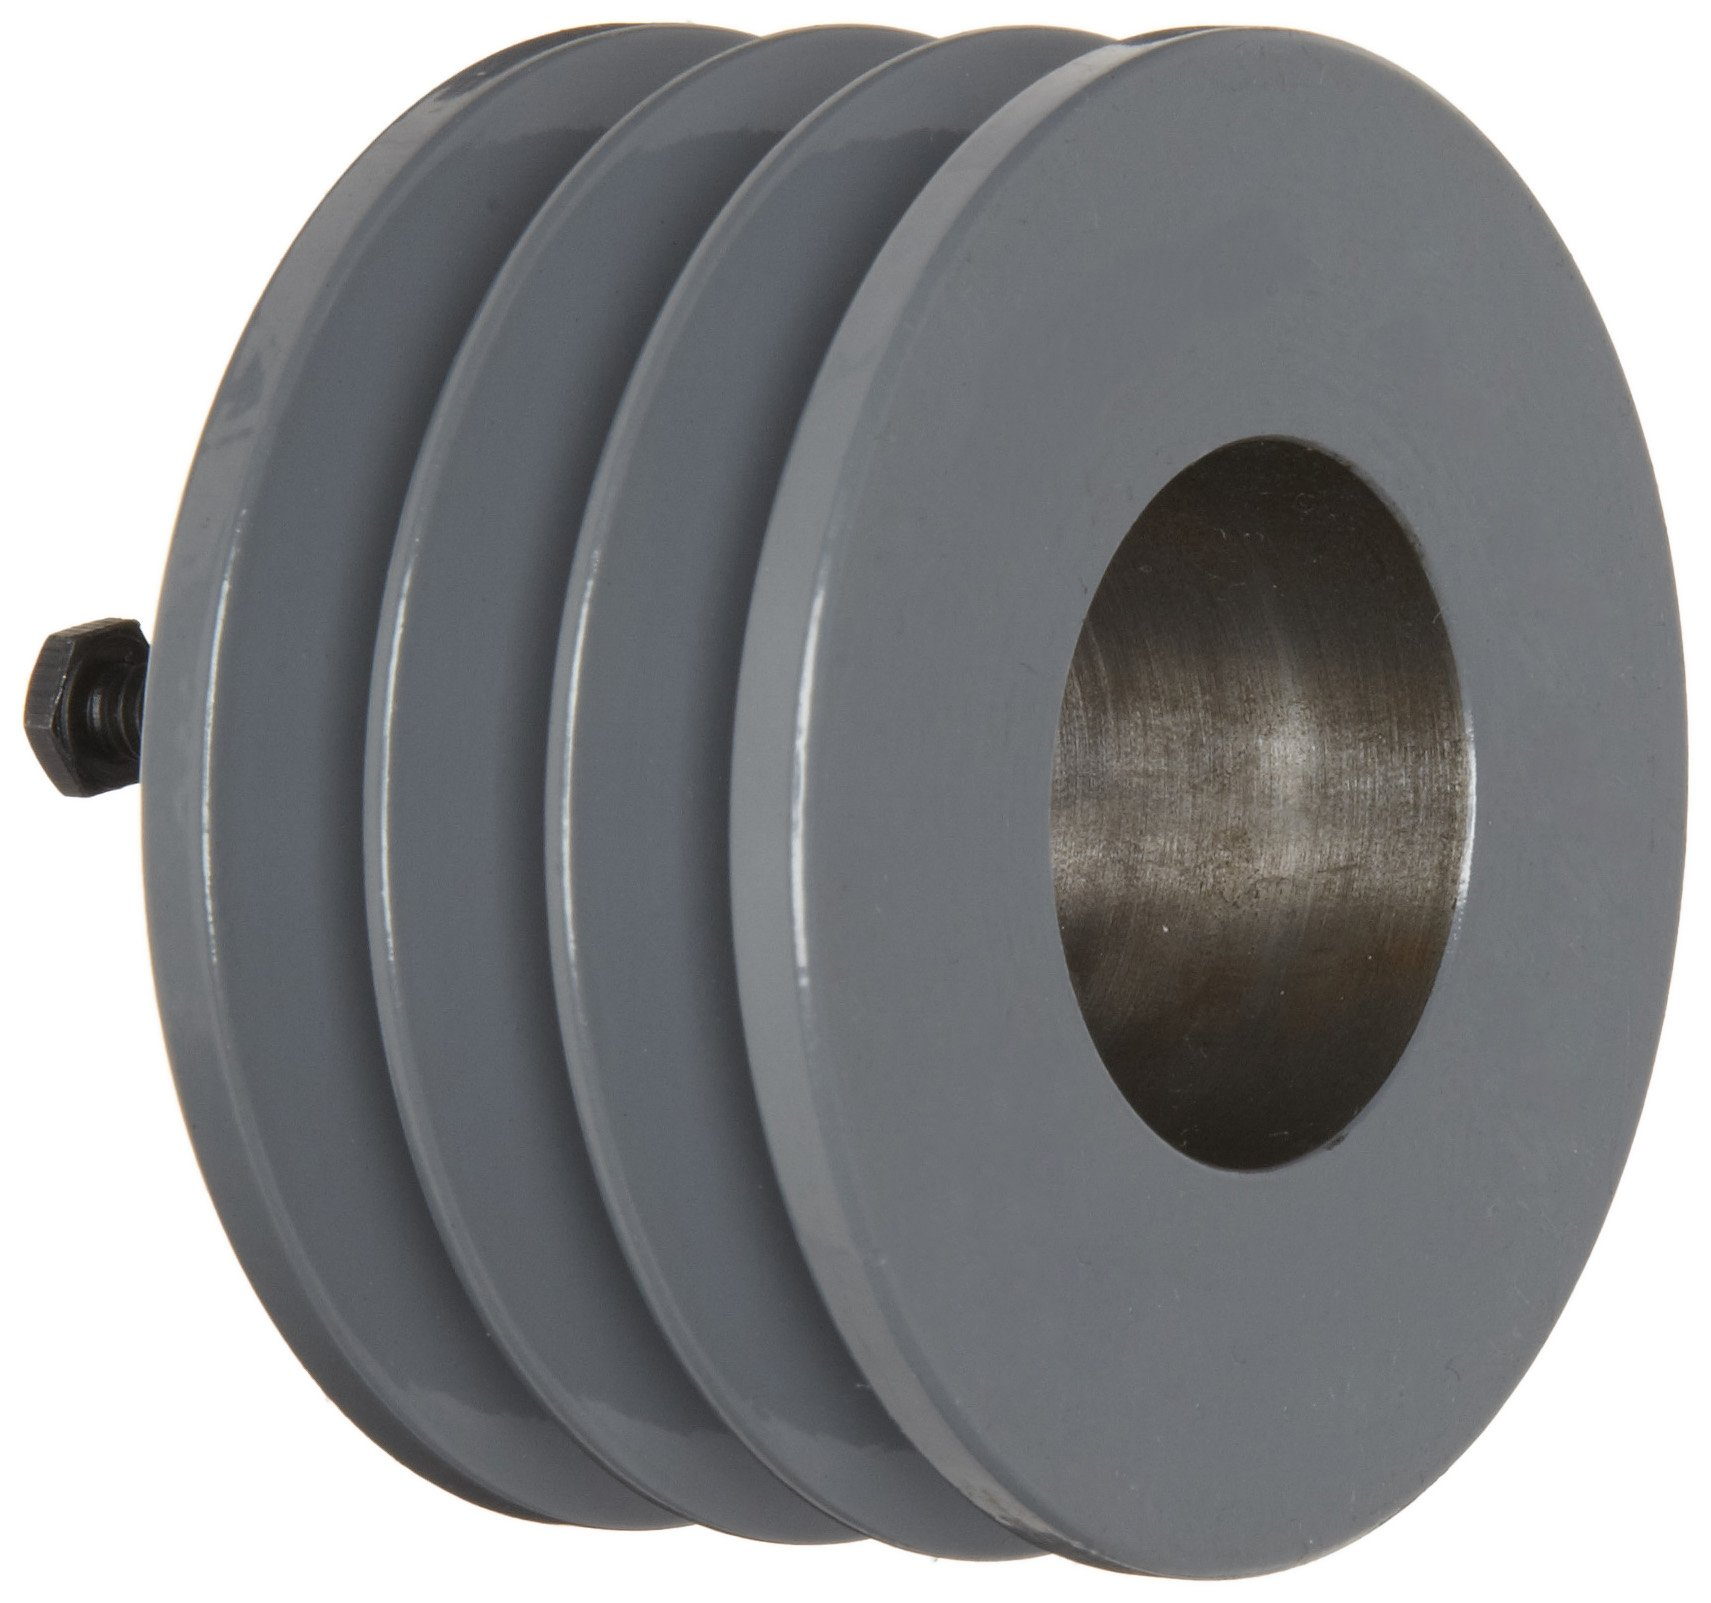 TB Woods 3V4123 Narrow V-Belt Sheave, 3V Belt Section, 3 Grooves, SH Bushing required, Cast Iron, 4.12'' OD